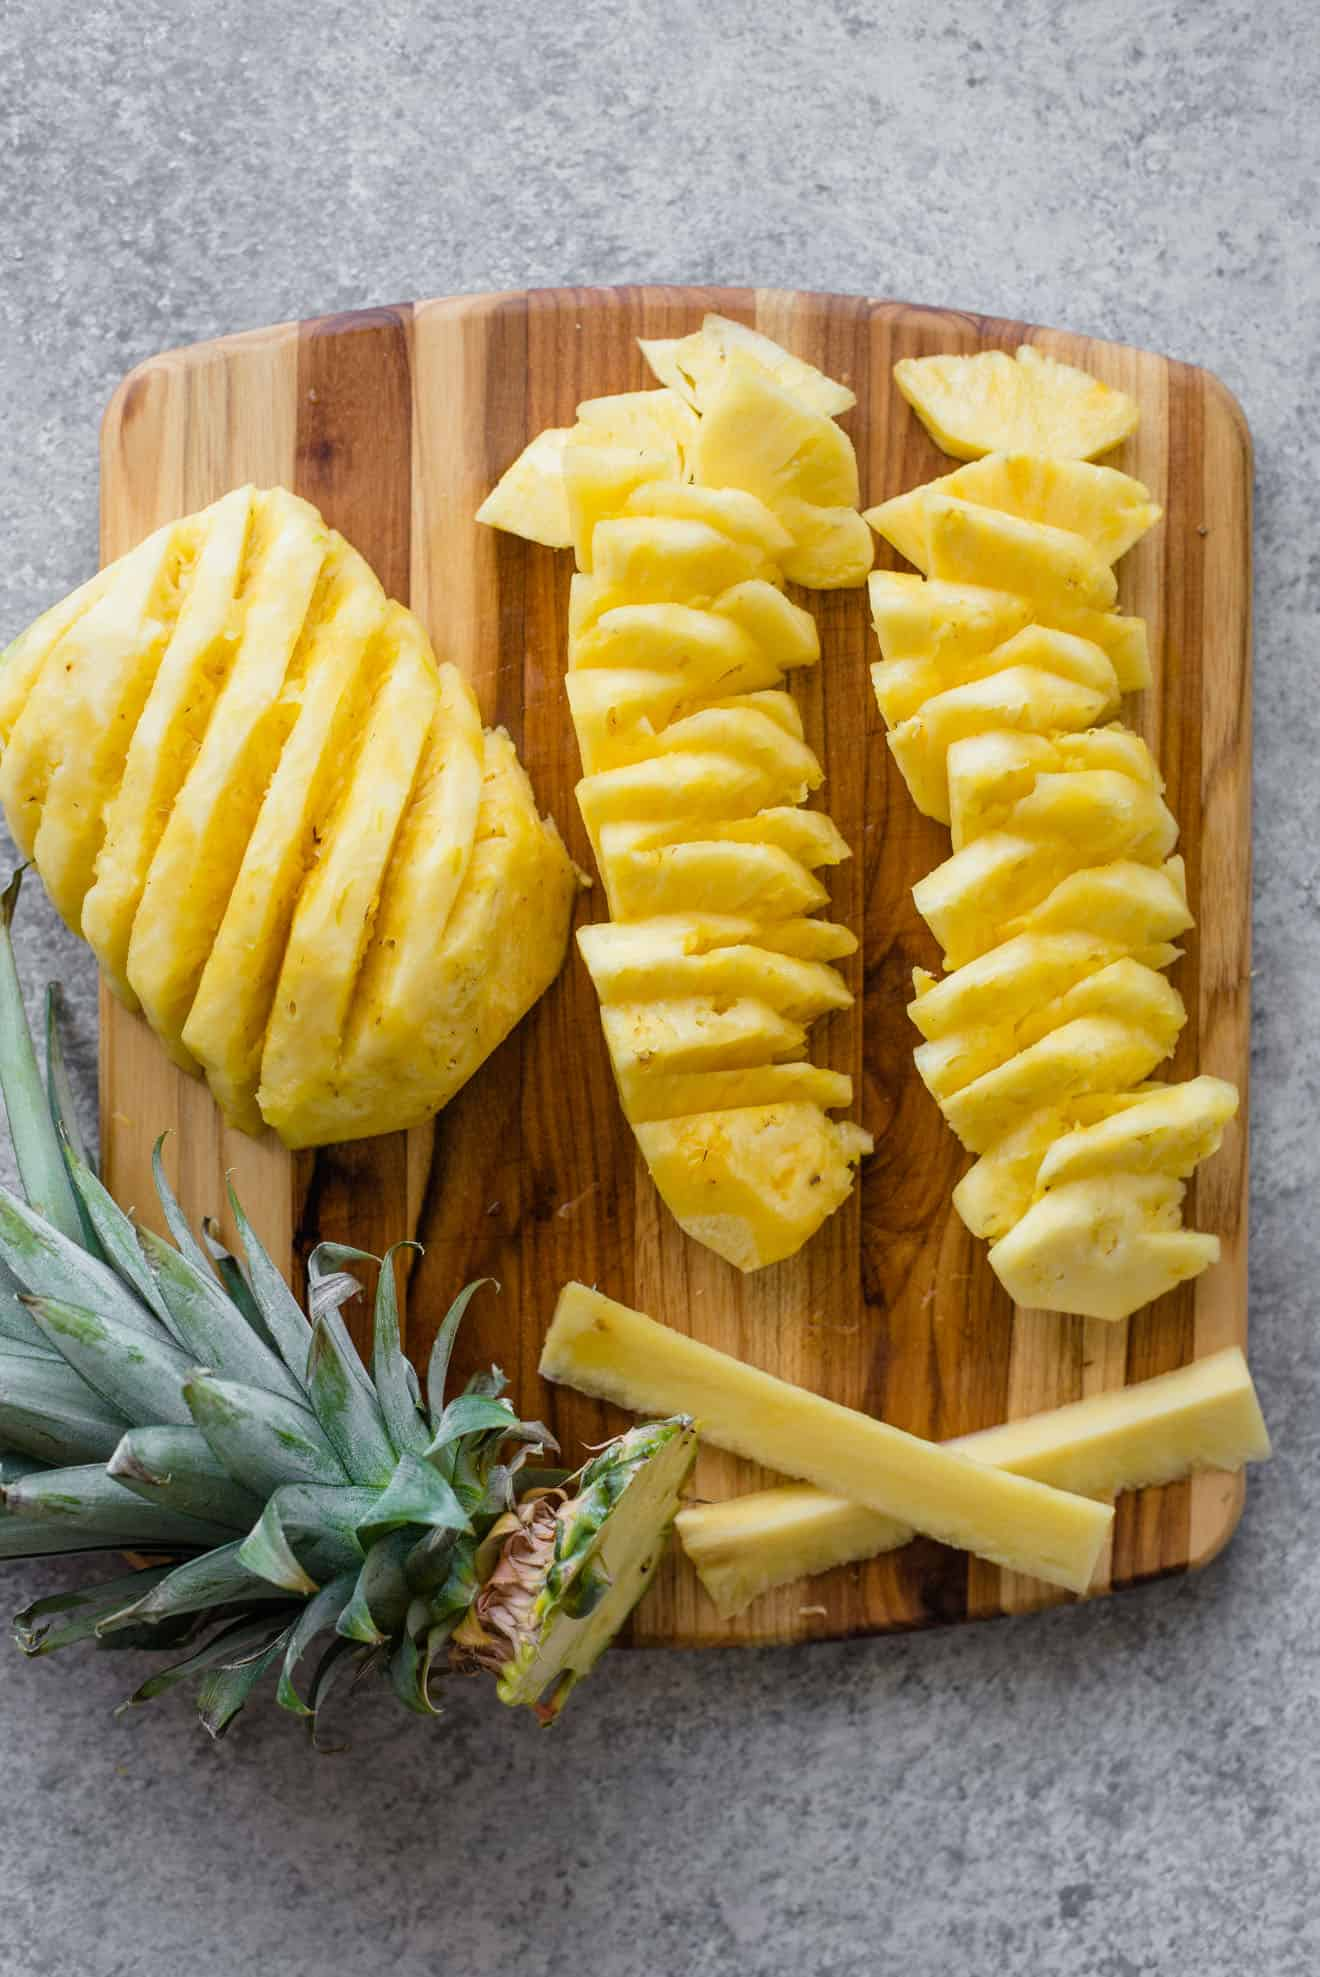 how to properly cut pineapple